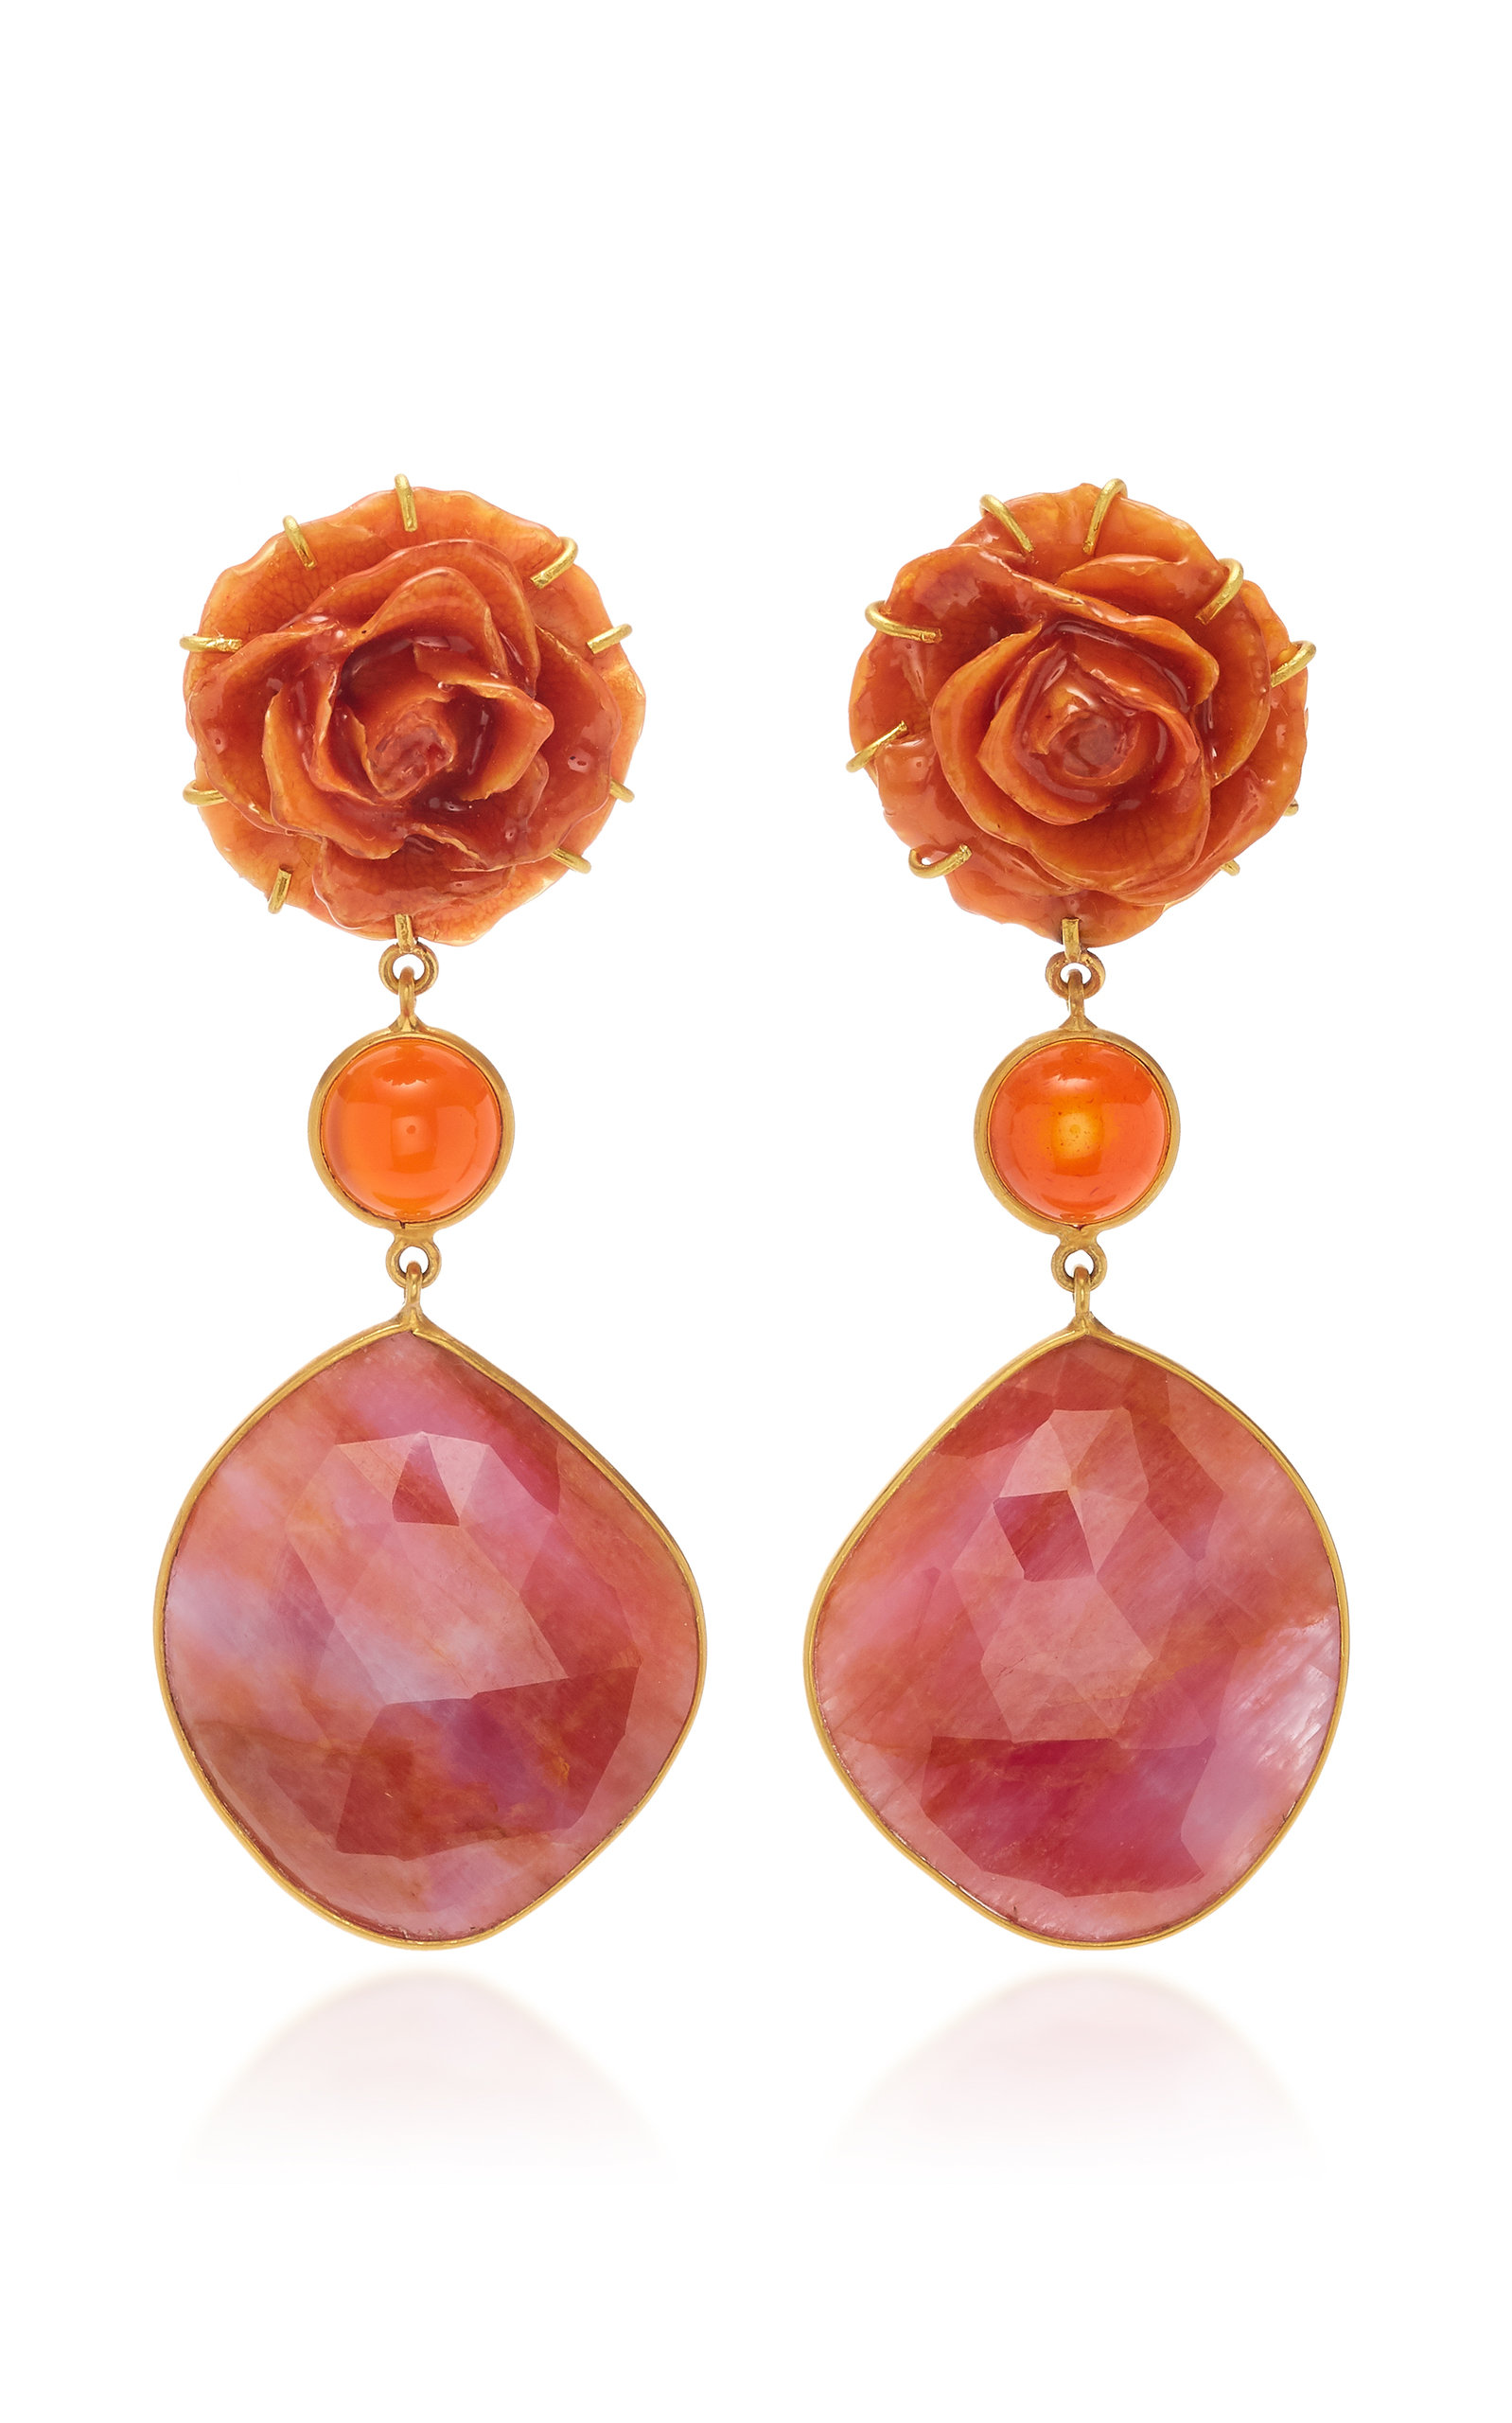 BAHINA 18K Gold Rose Carnelian And Sapphire Earrings in Red